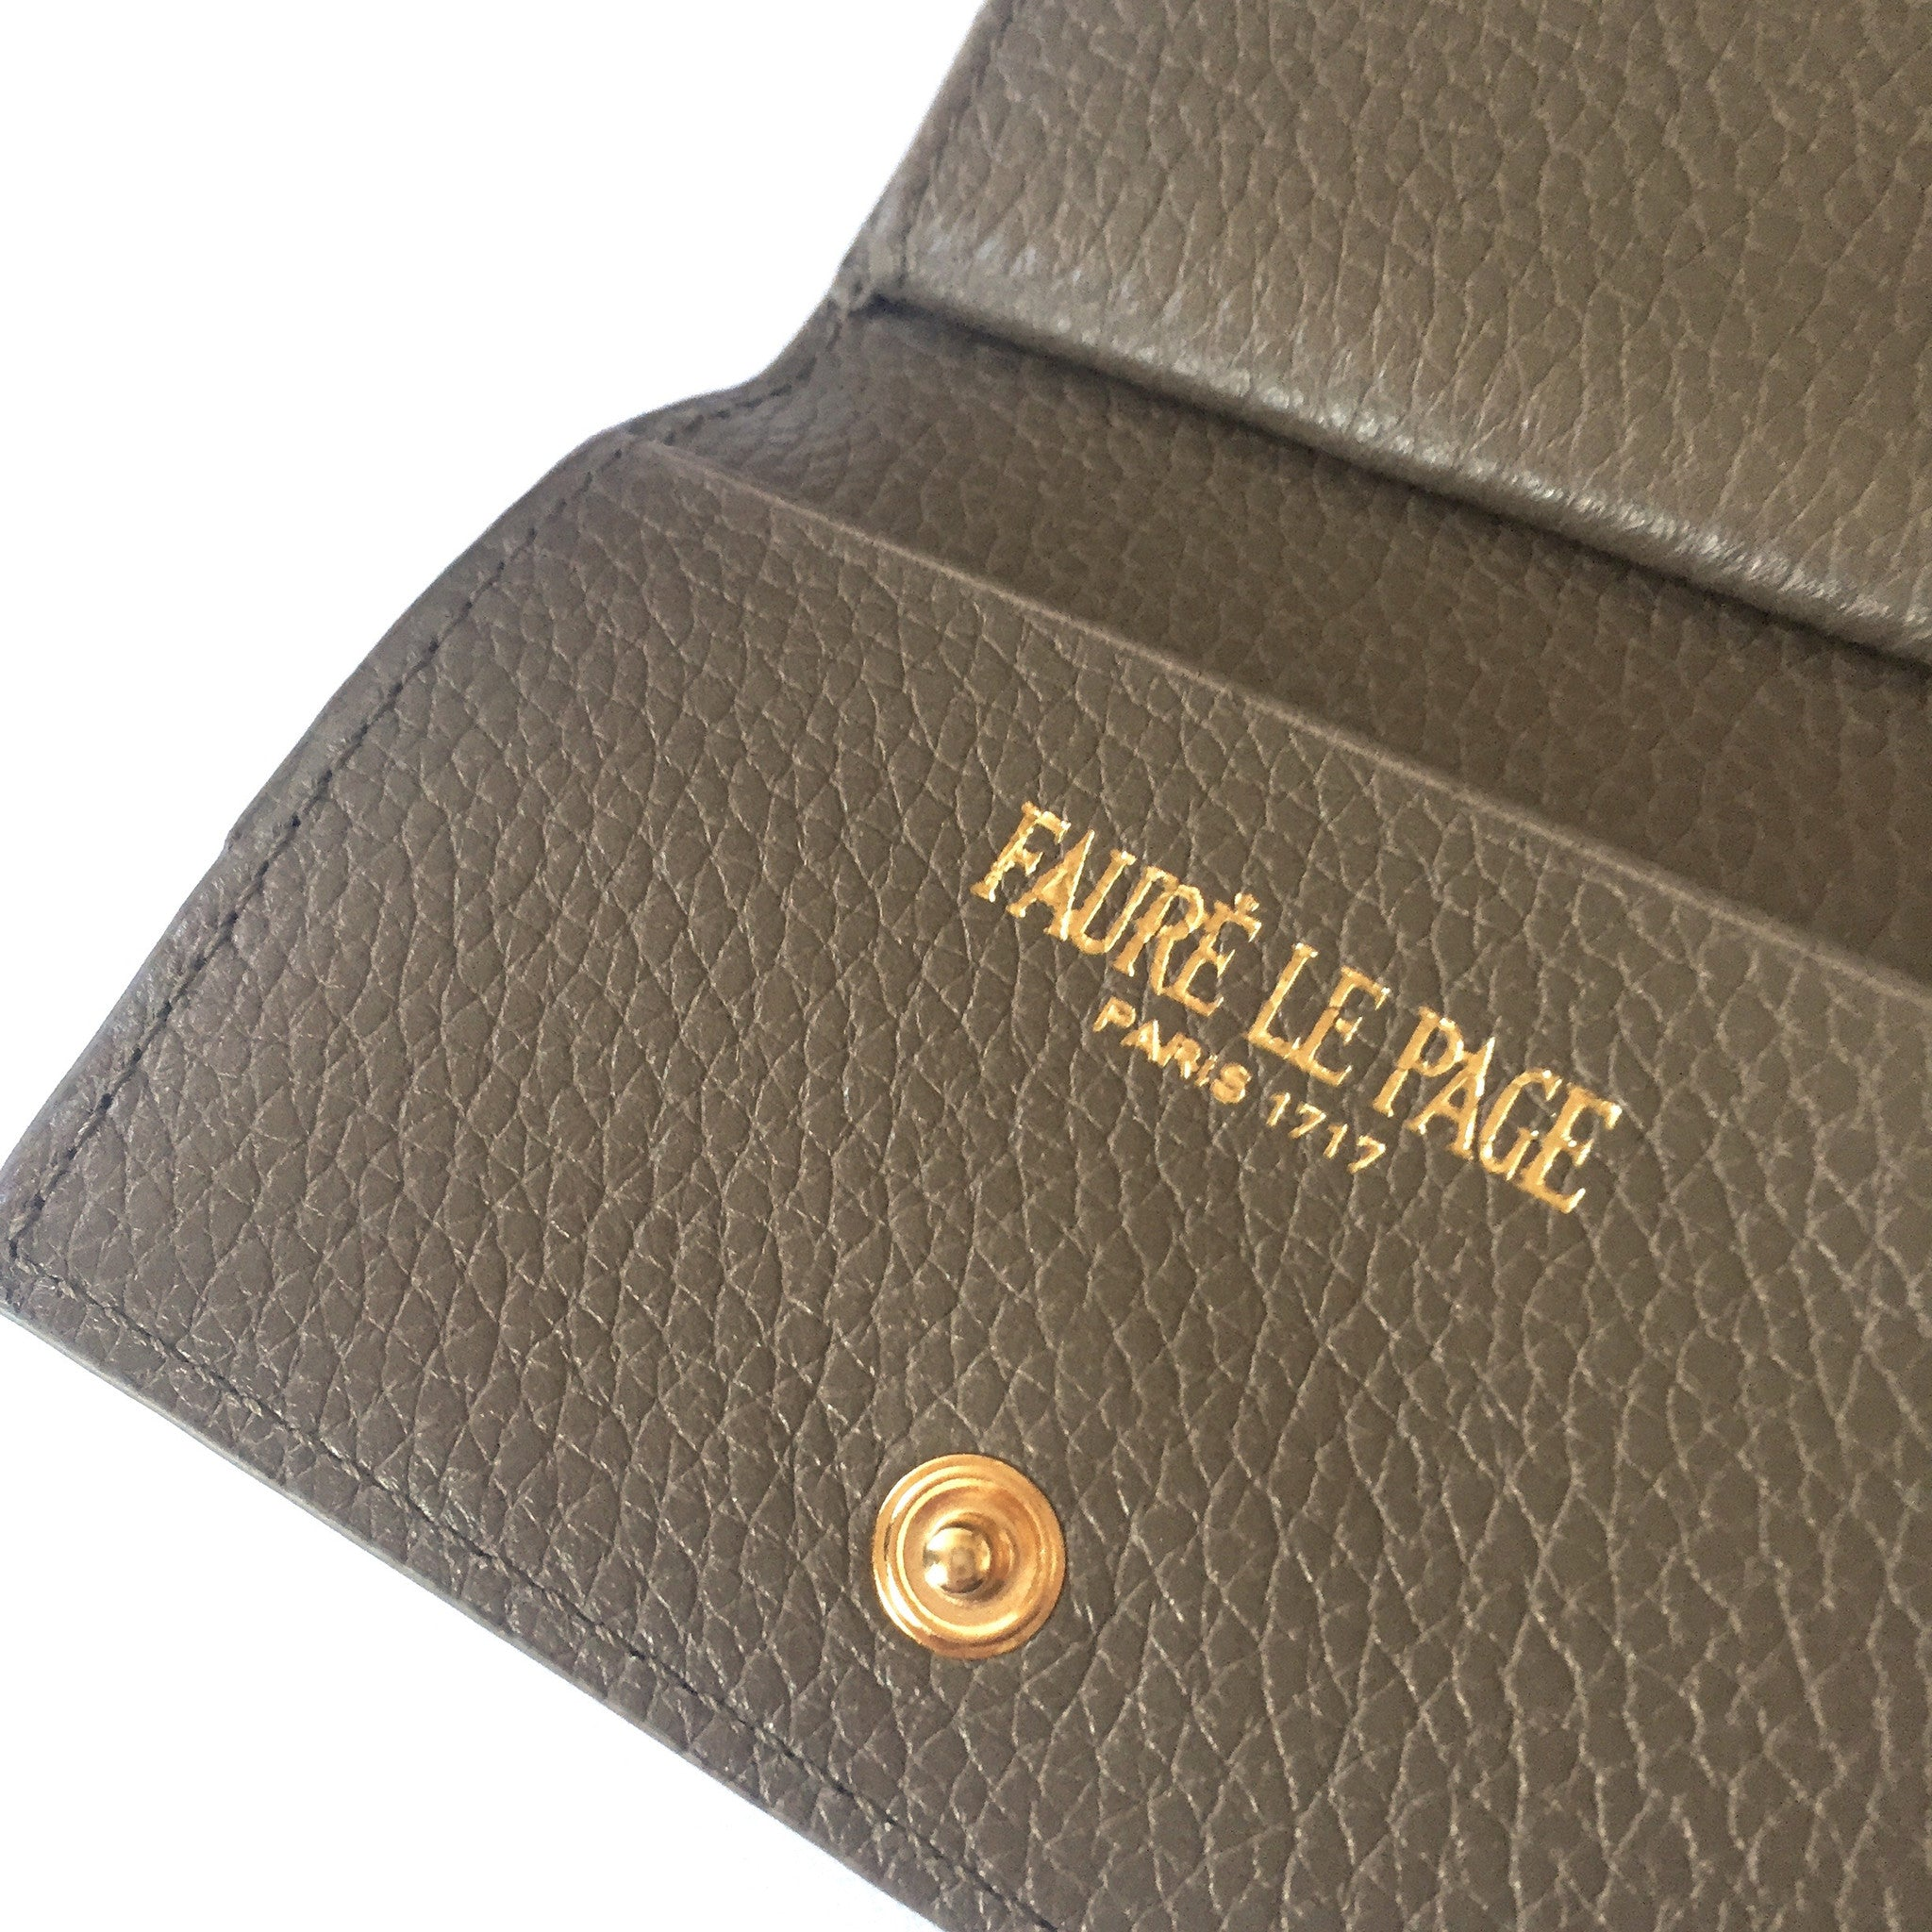 Faure Le Page - Walnut Brown PC Parade Wallet